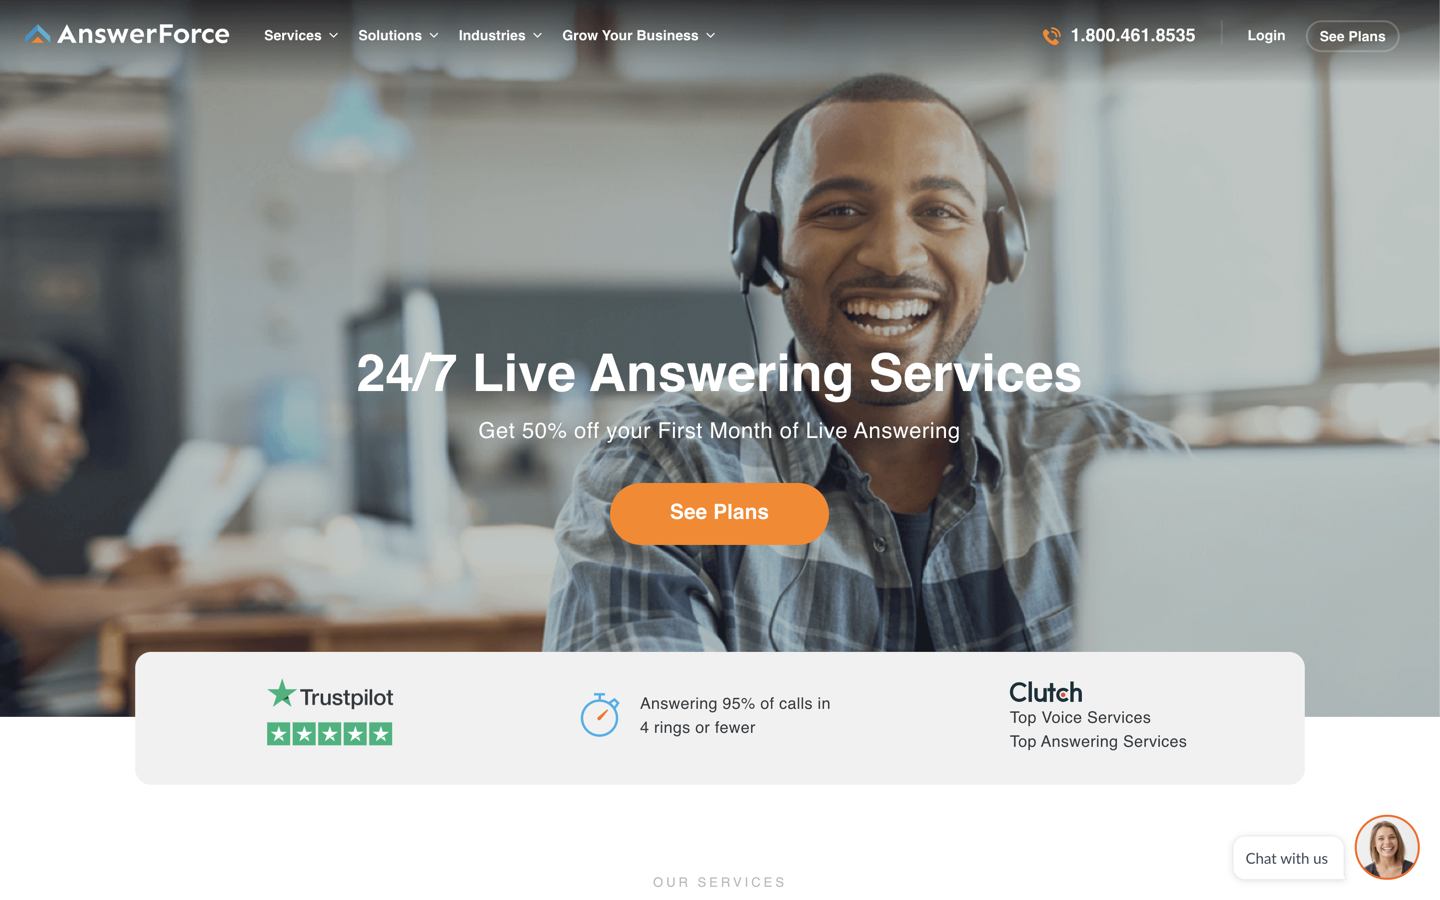 AnswerForce home page